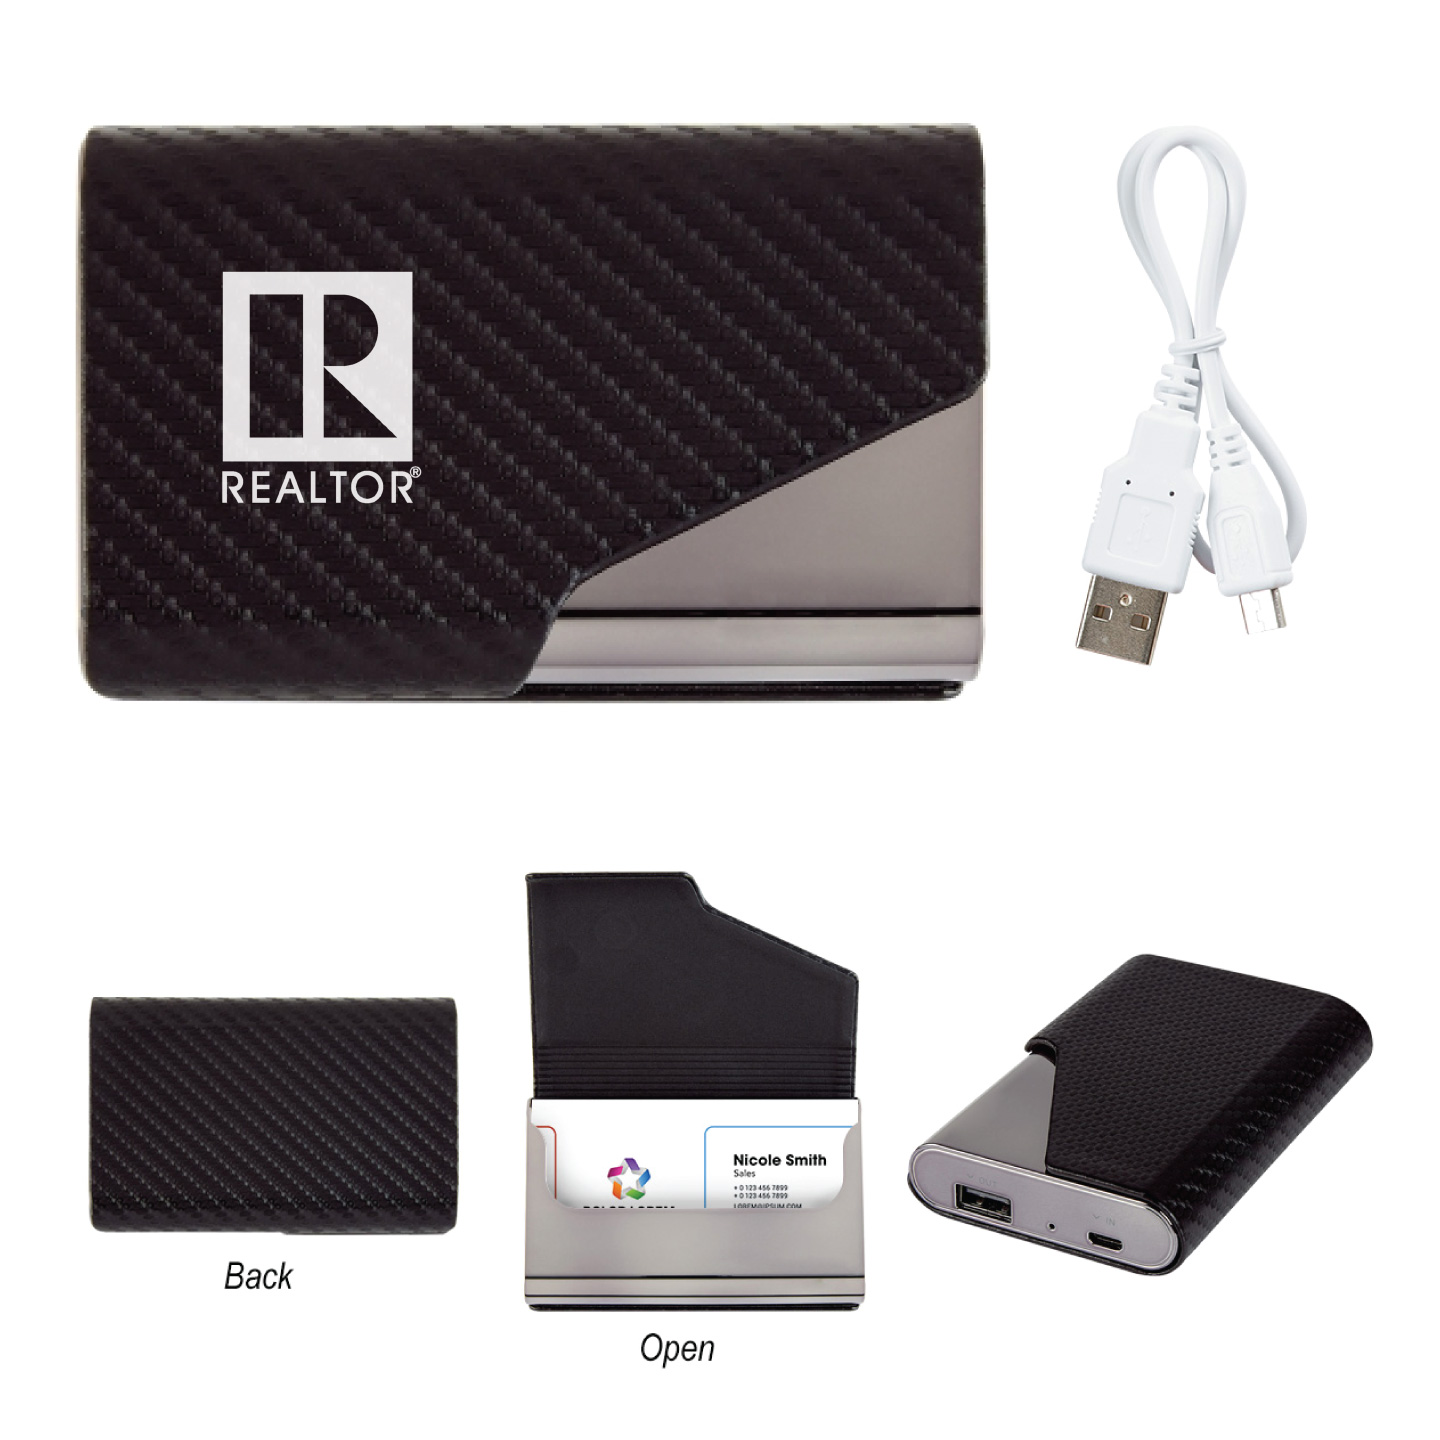 Power Bank Business Card Holder 2,500 mAh - RTS4740